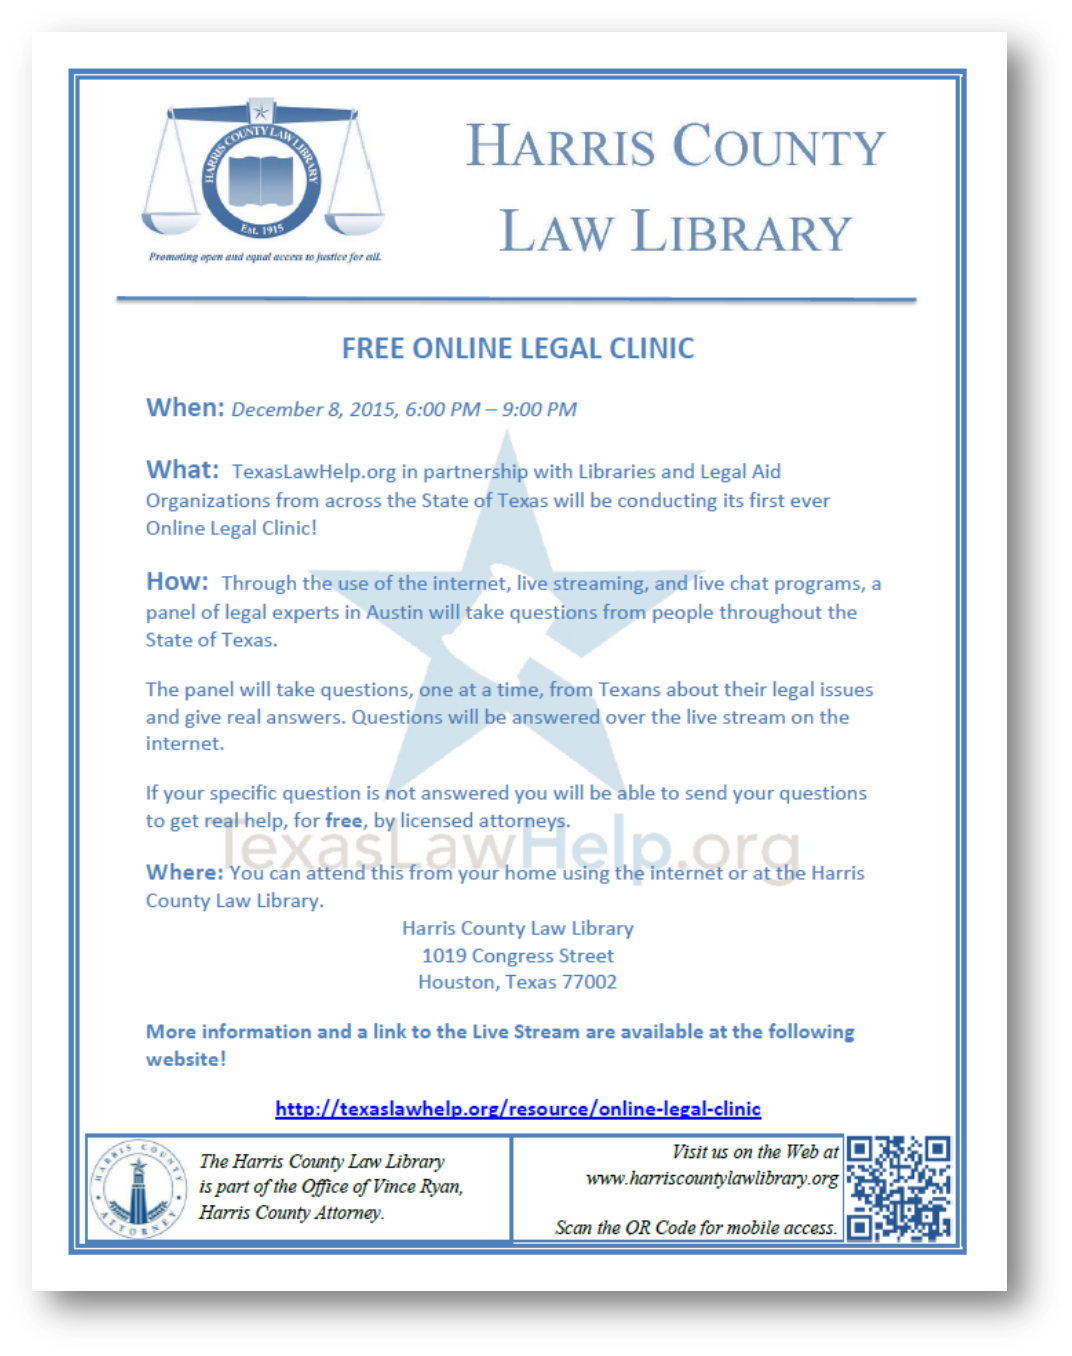 Link to PDF flyer for TexasLawHelp.org Online Legal Clinic